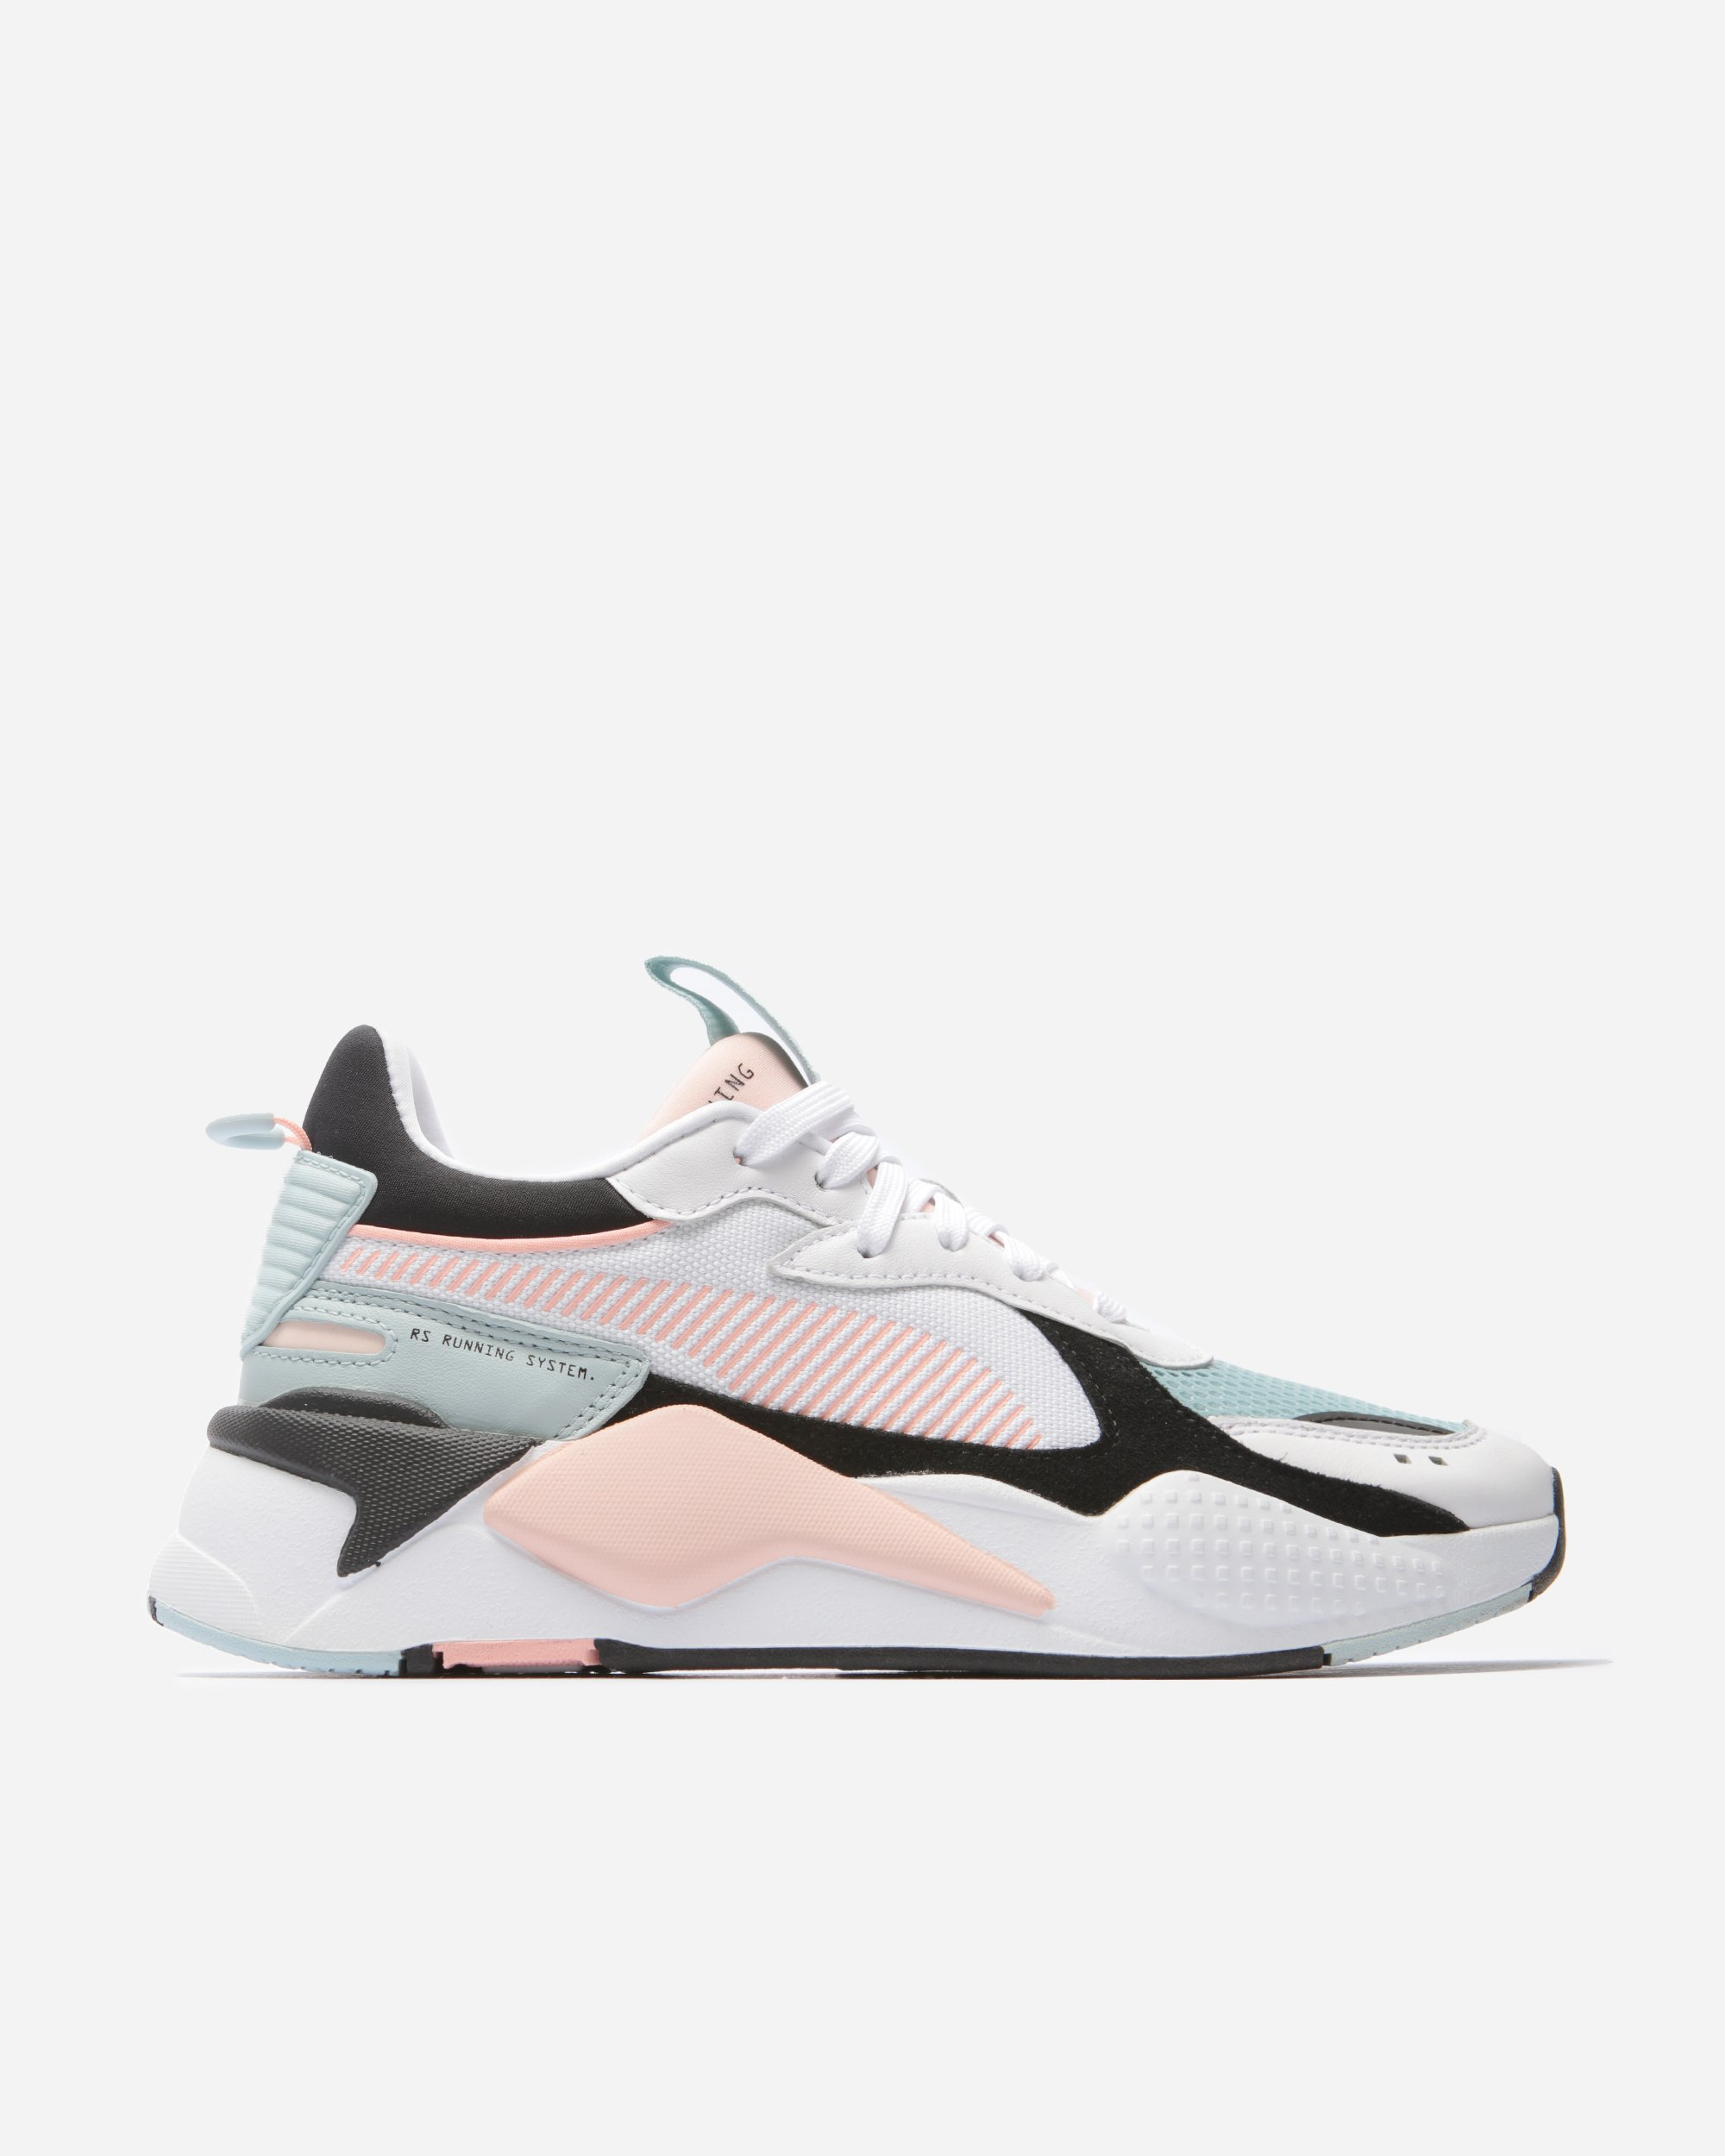 Puma RS-X Reinvention White/Pink | 369579 006 – Naked